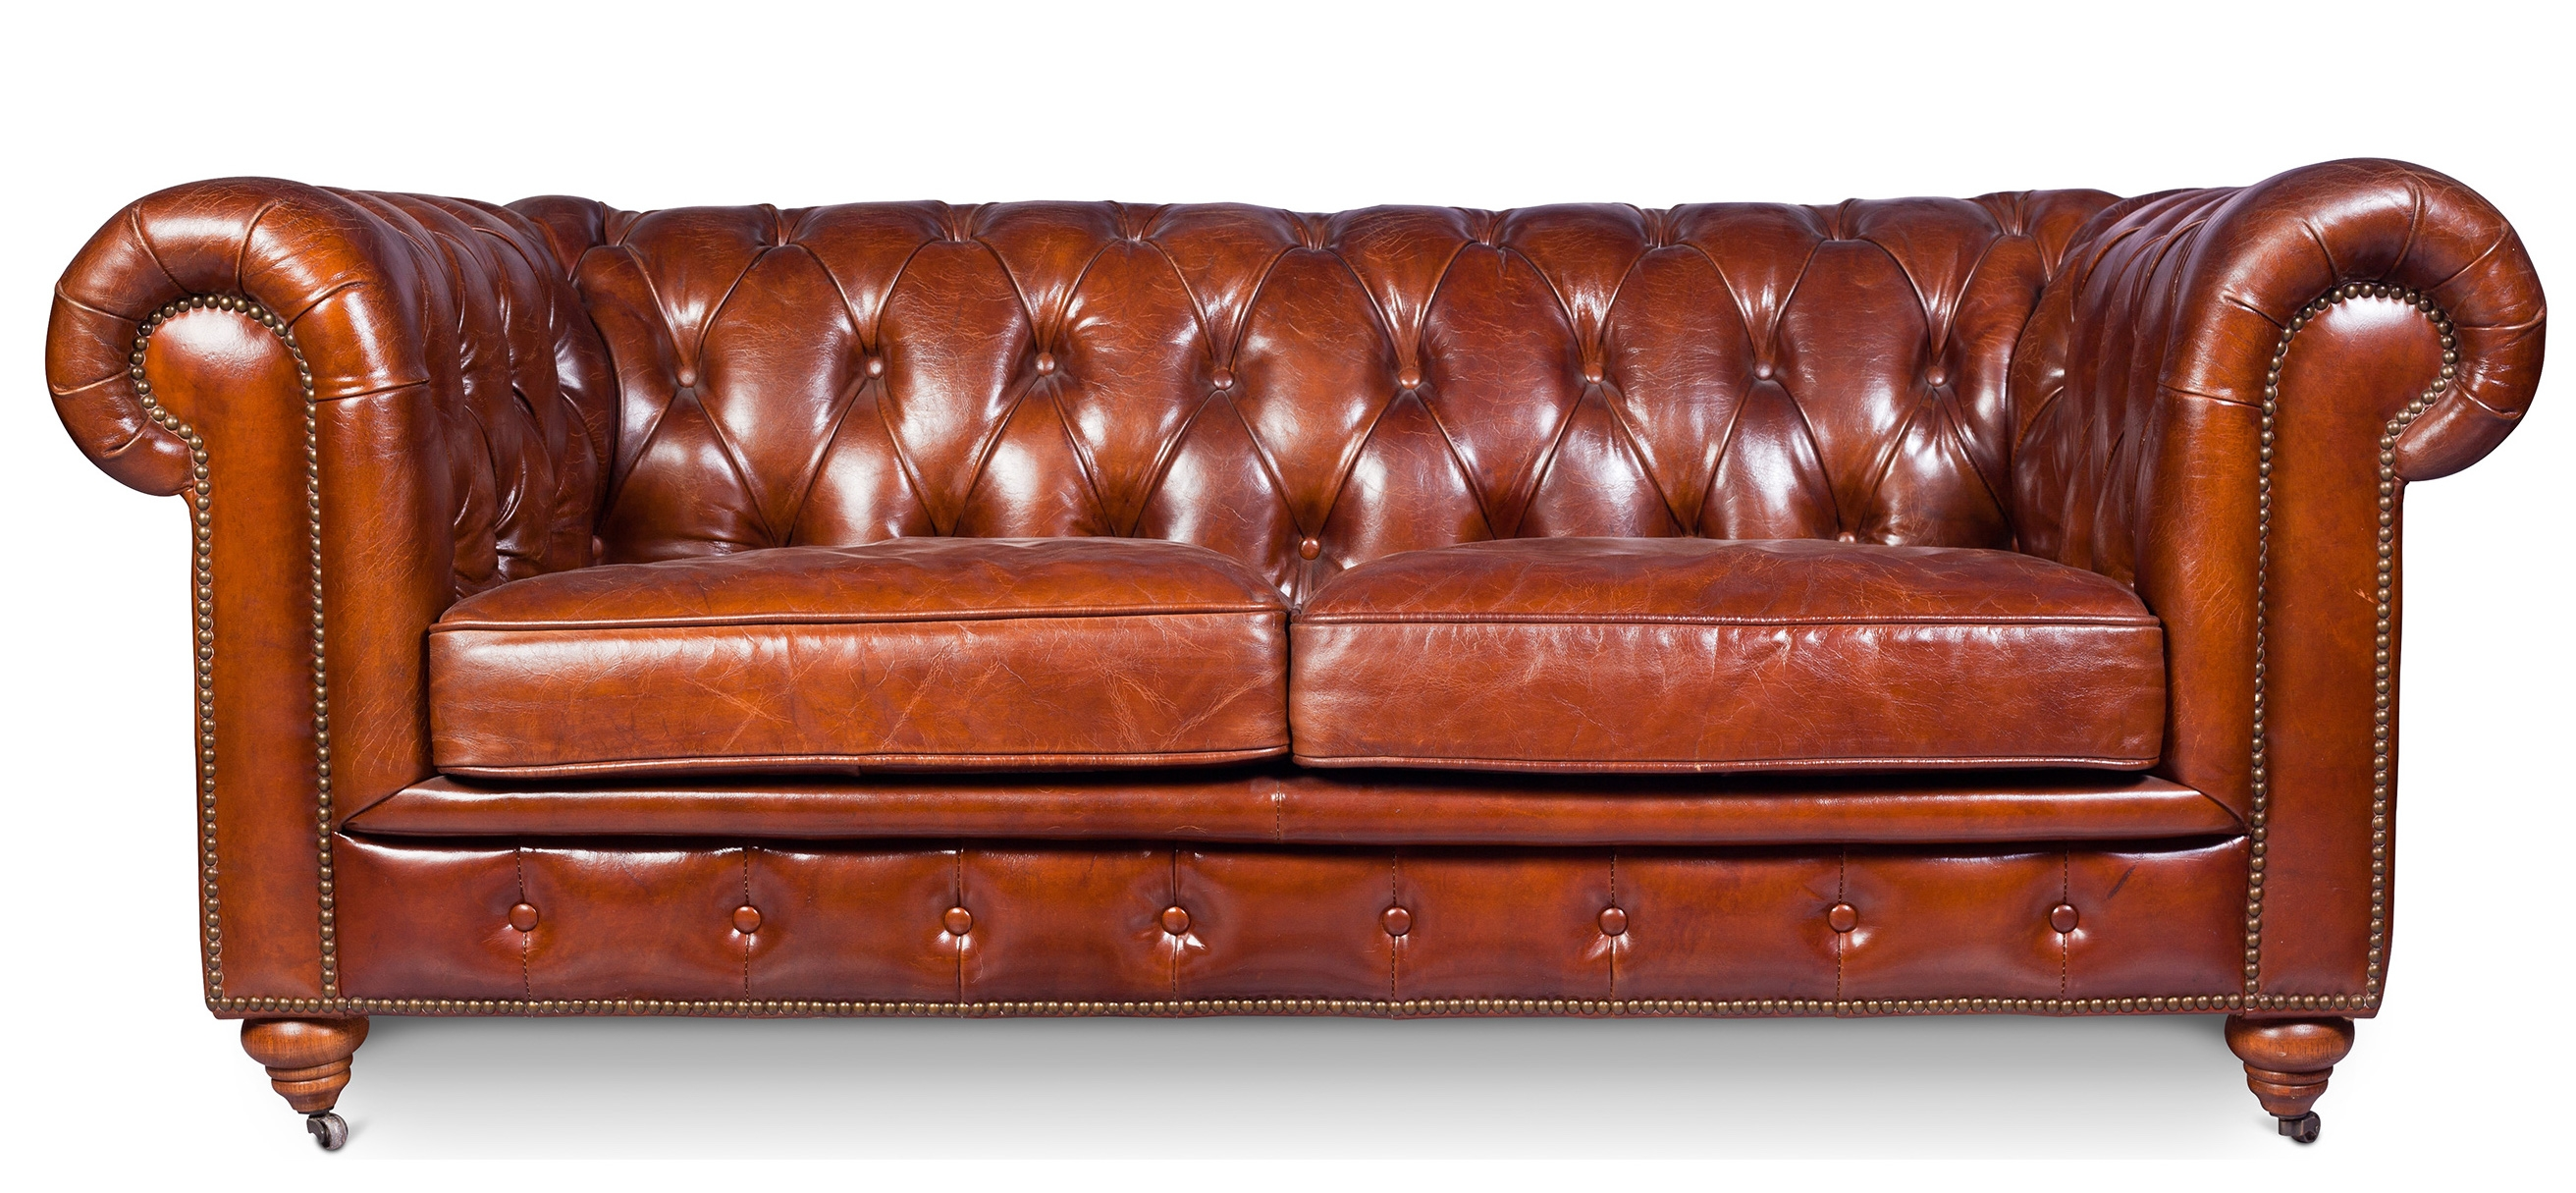 Canap 3 Places Cuir Brun Vintage Chesterfield